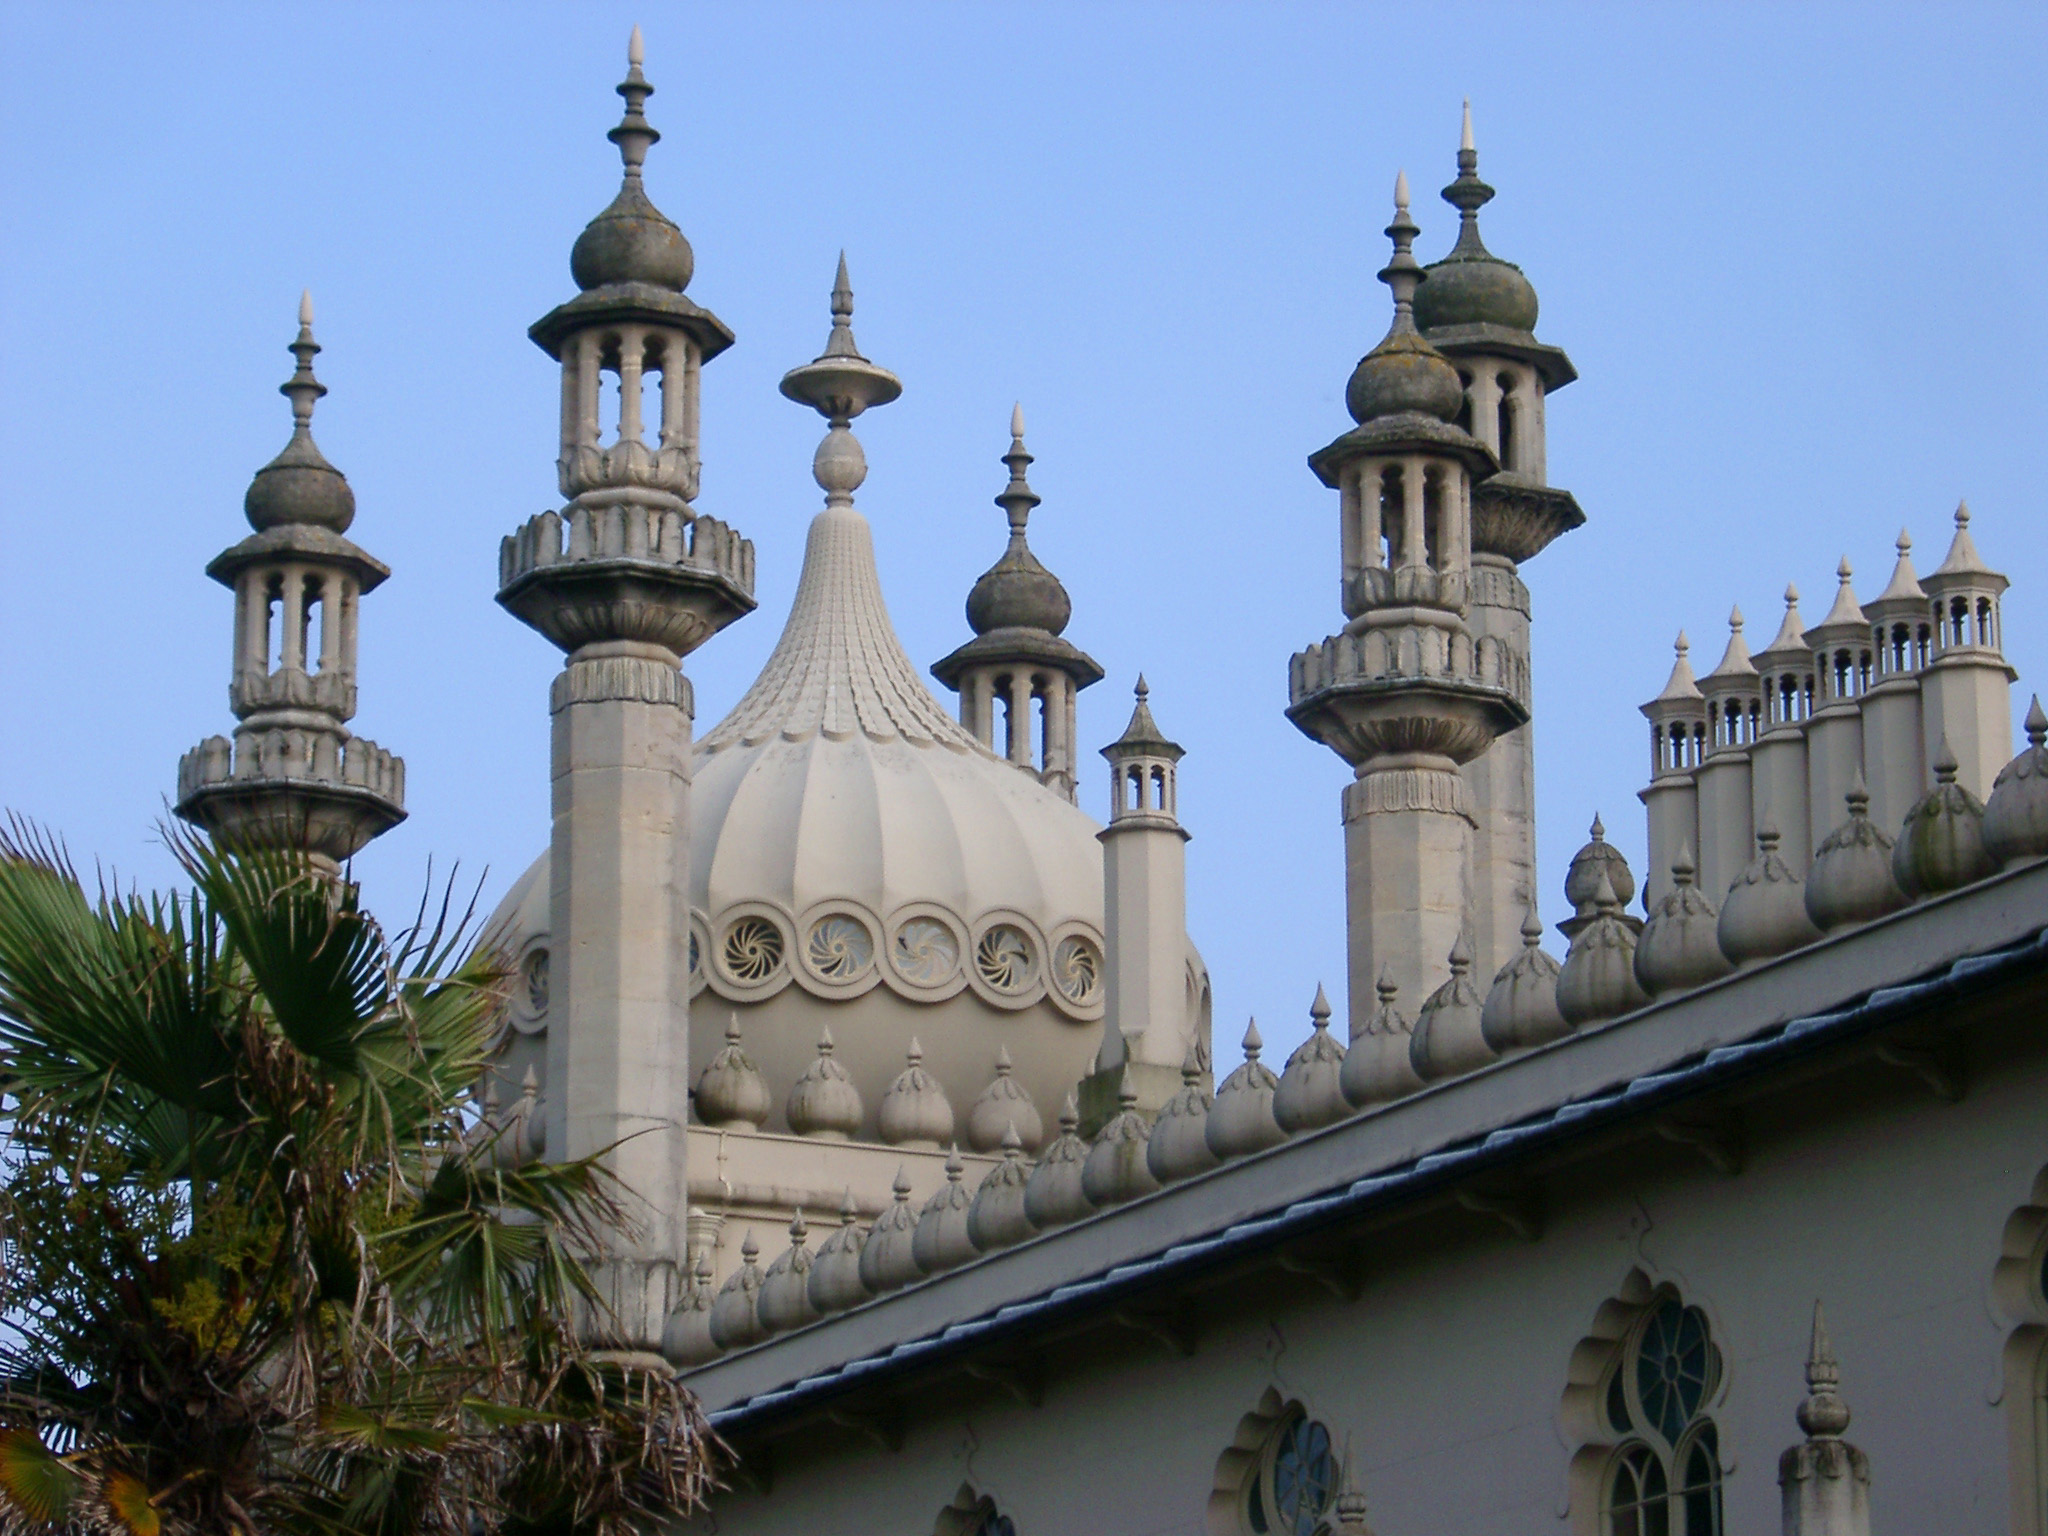 Famous Architectural Exterior Design, Emphasizing Dome, of Royal Pavilion Building in Brighton, England, United Kingdom. Captured on the Afternoon with Light Blue Sky Background.